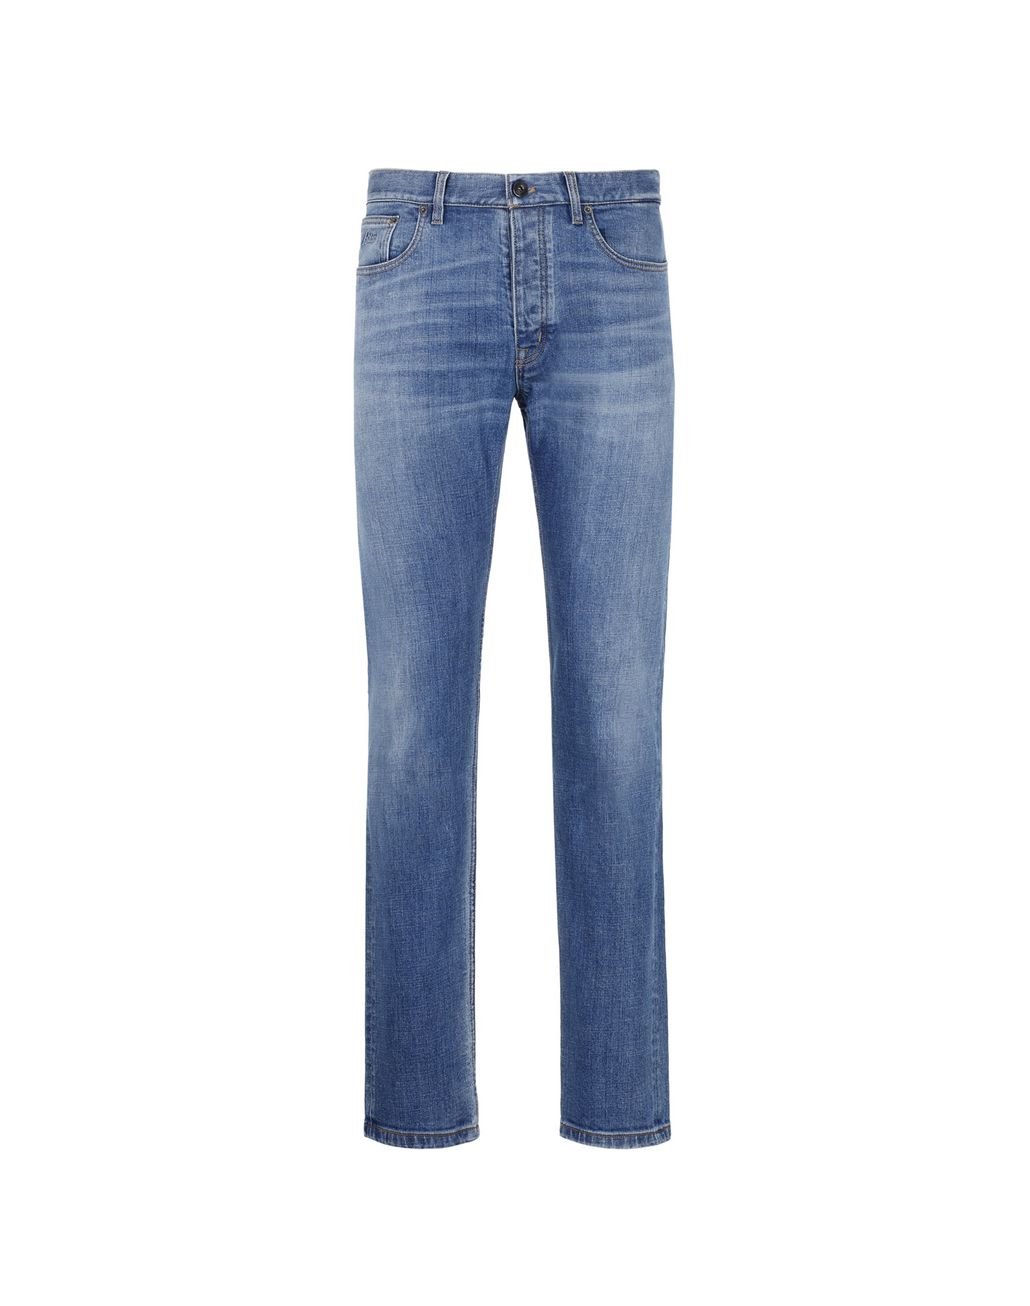 BRIONI  Blue Slim Fit Jeans Denim Man f